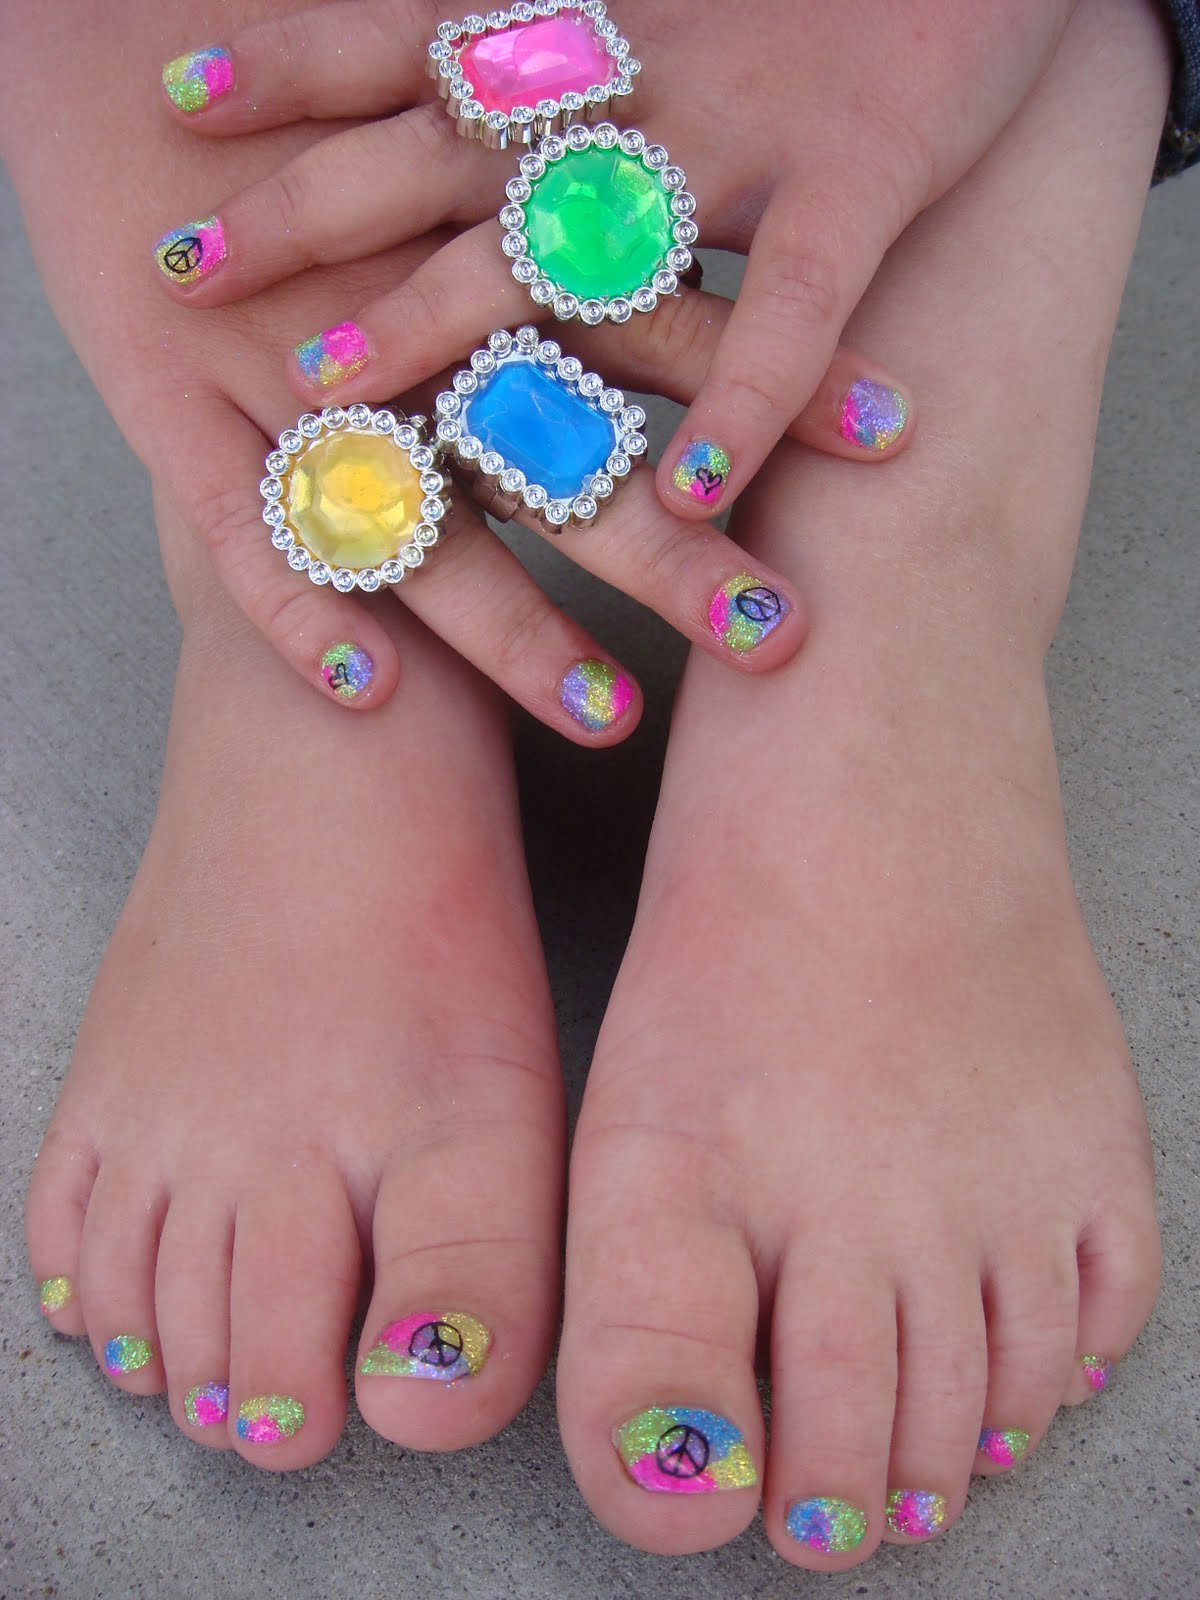 Cute Nail Designs For 10 Year Olds Toothpick Nail Art Designs